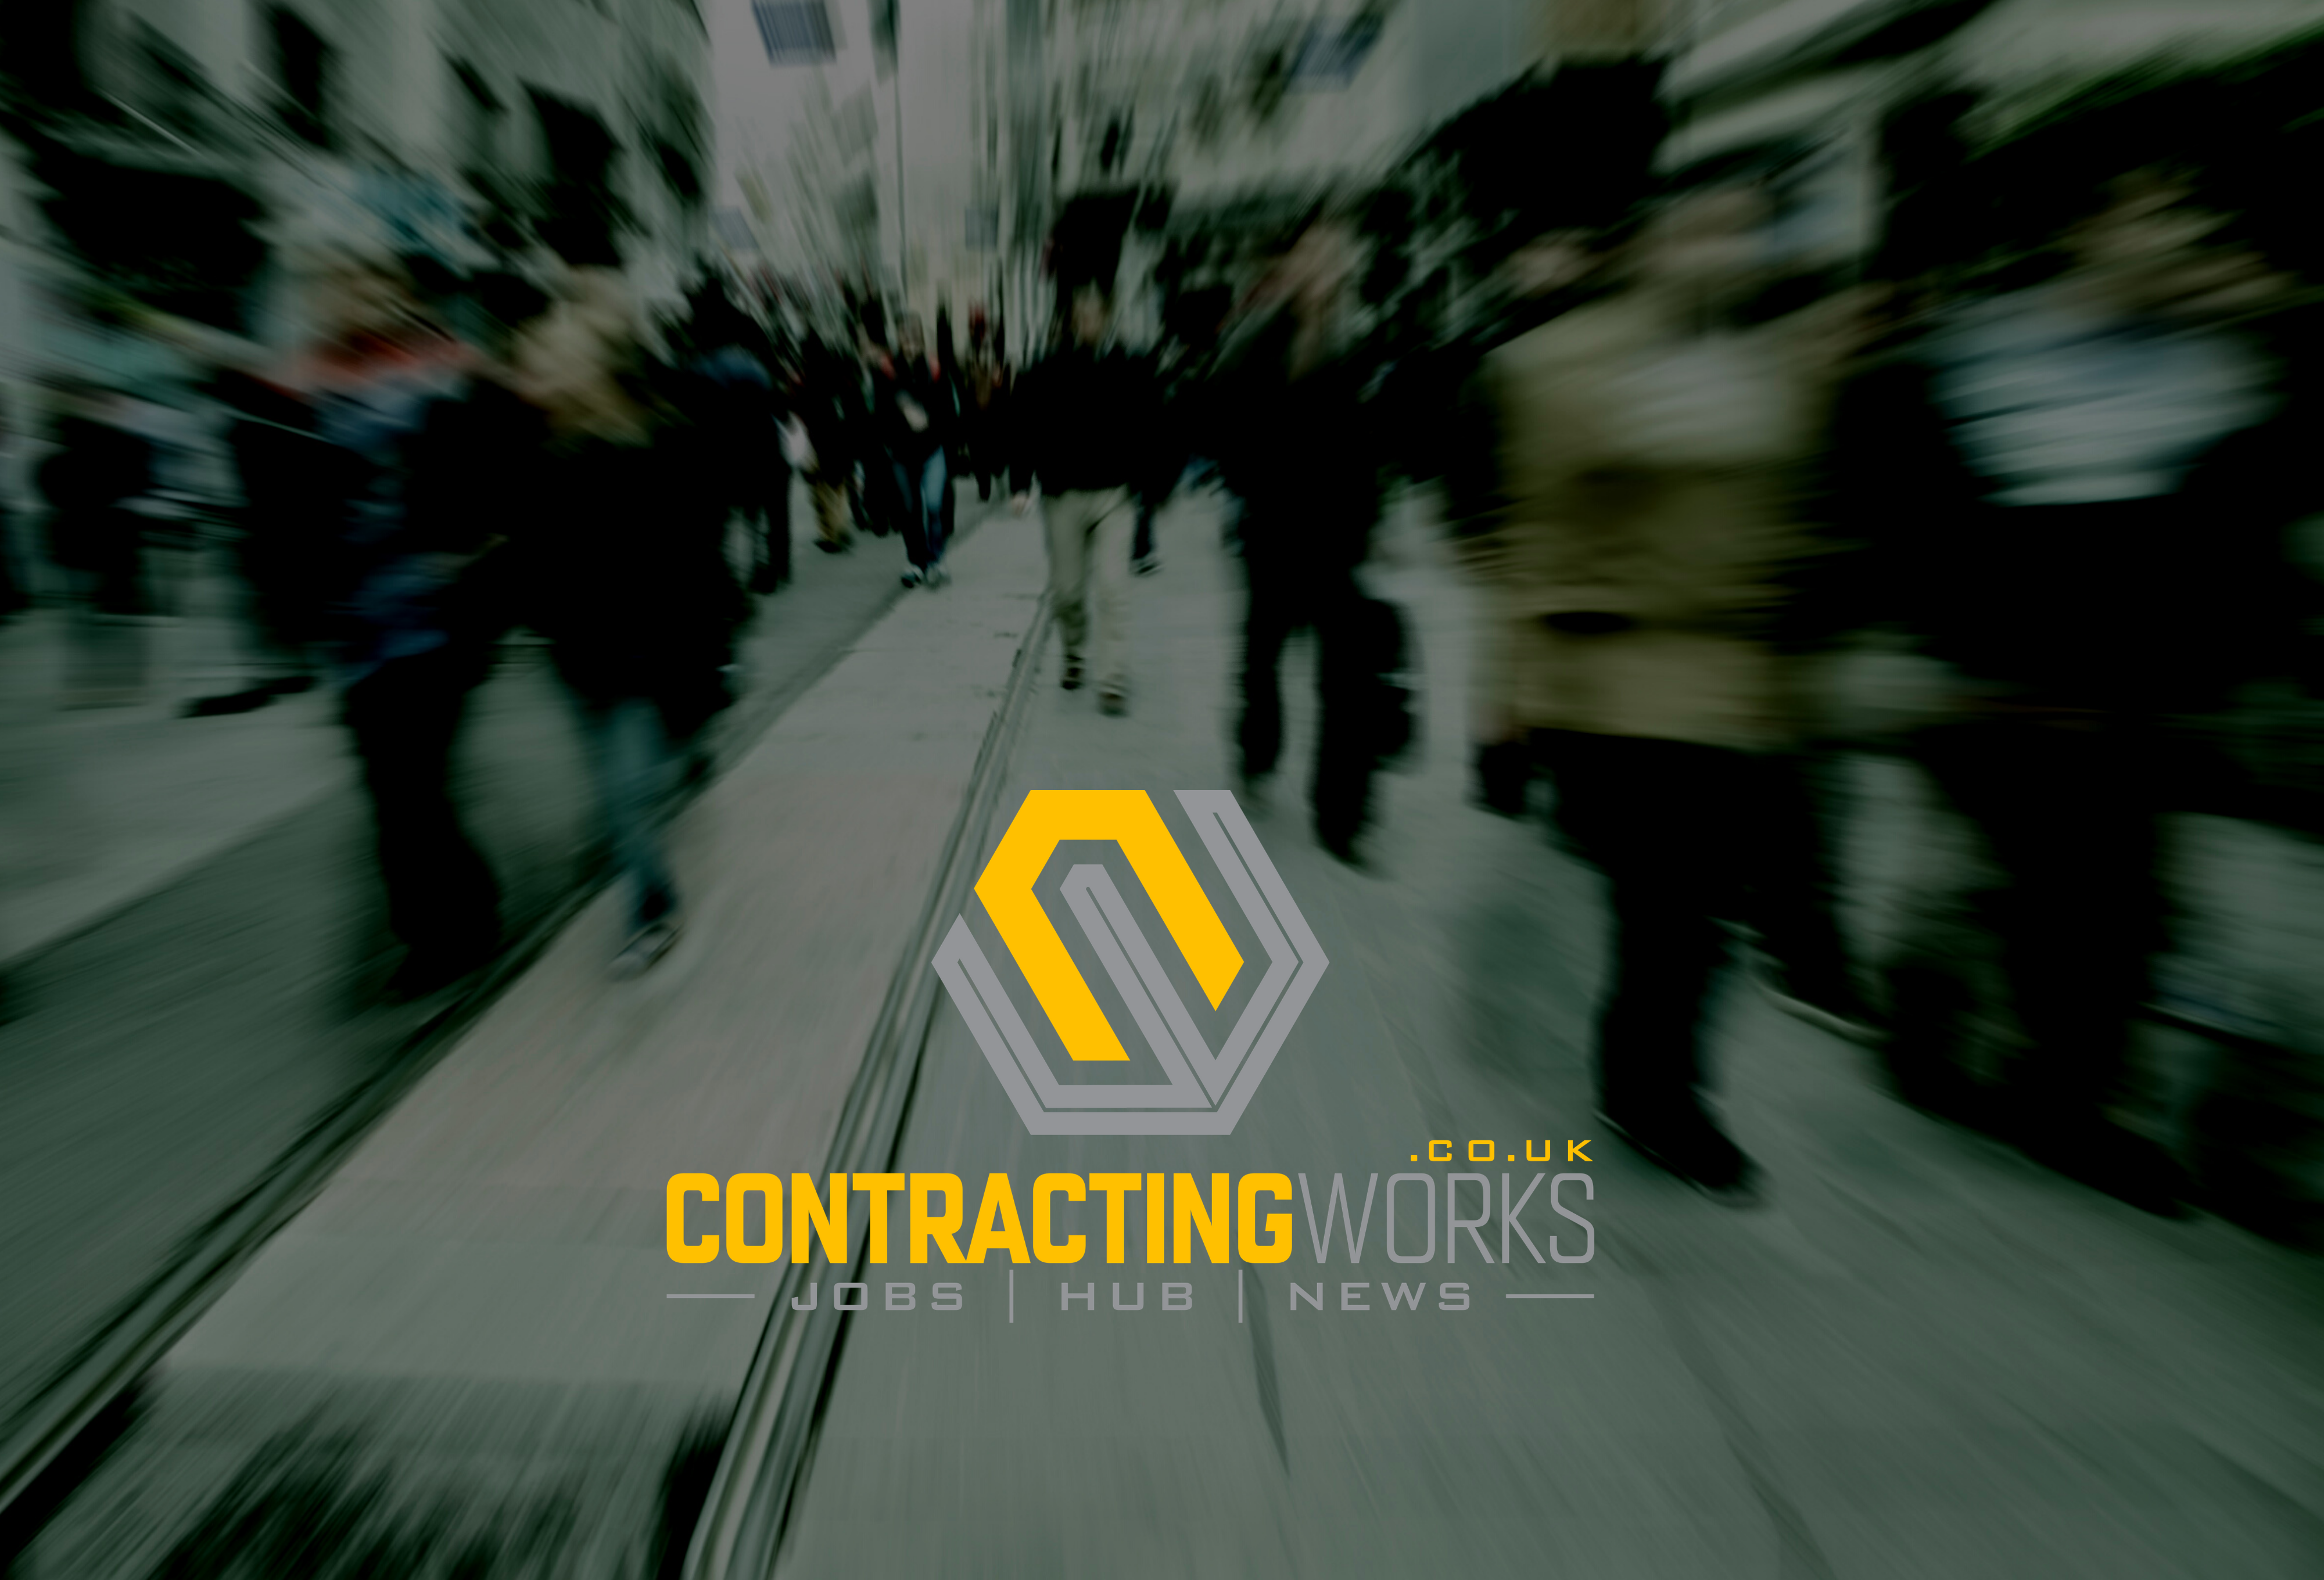 CONTRACTOR HOURS AND WAGES RISE - REPORT